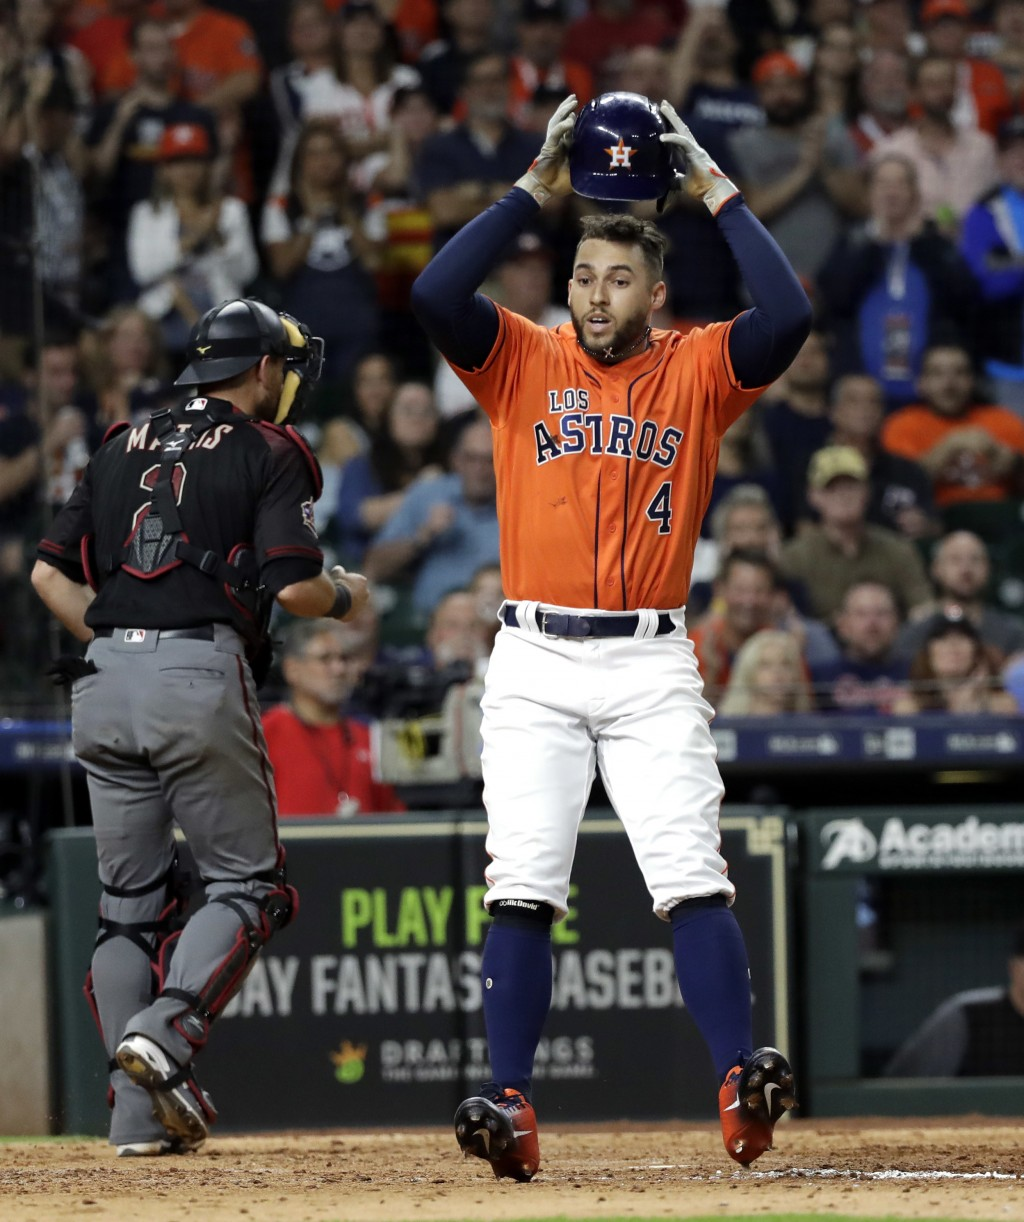 Houston Astros' George Springer reacts after a strike three call to end the seventh inning of a baseball game against the Arizona Diamondbacks Friday,